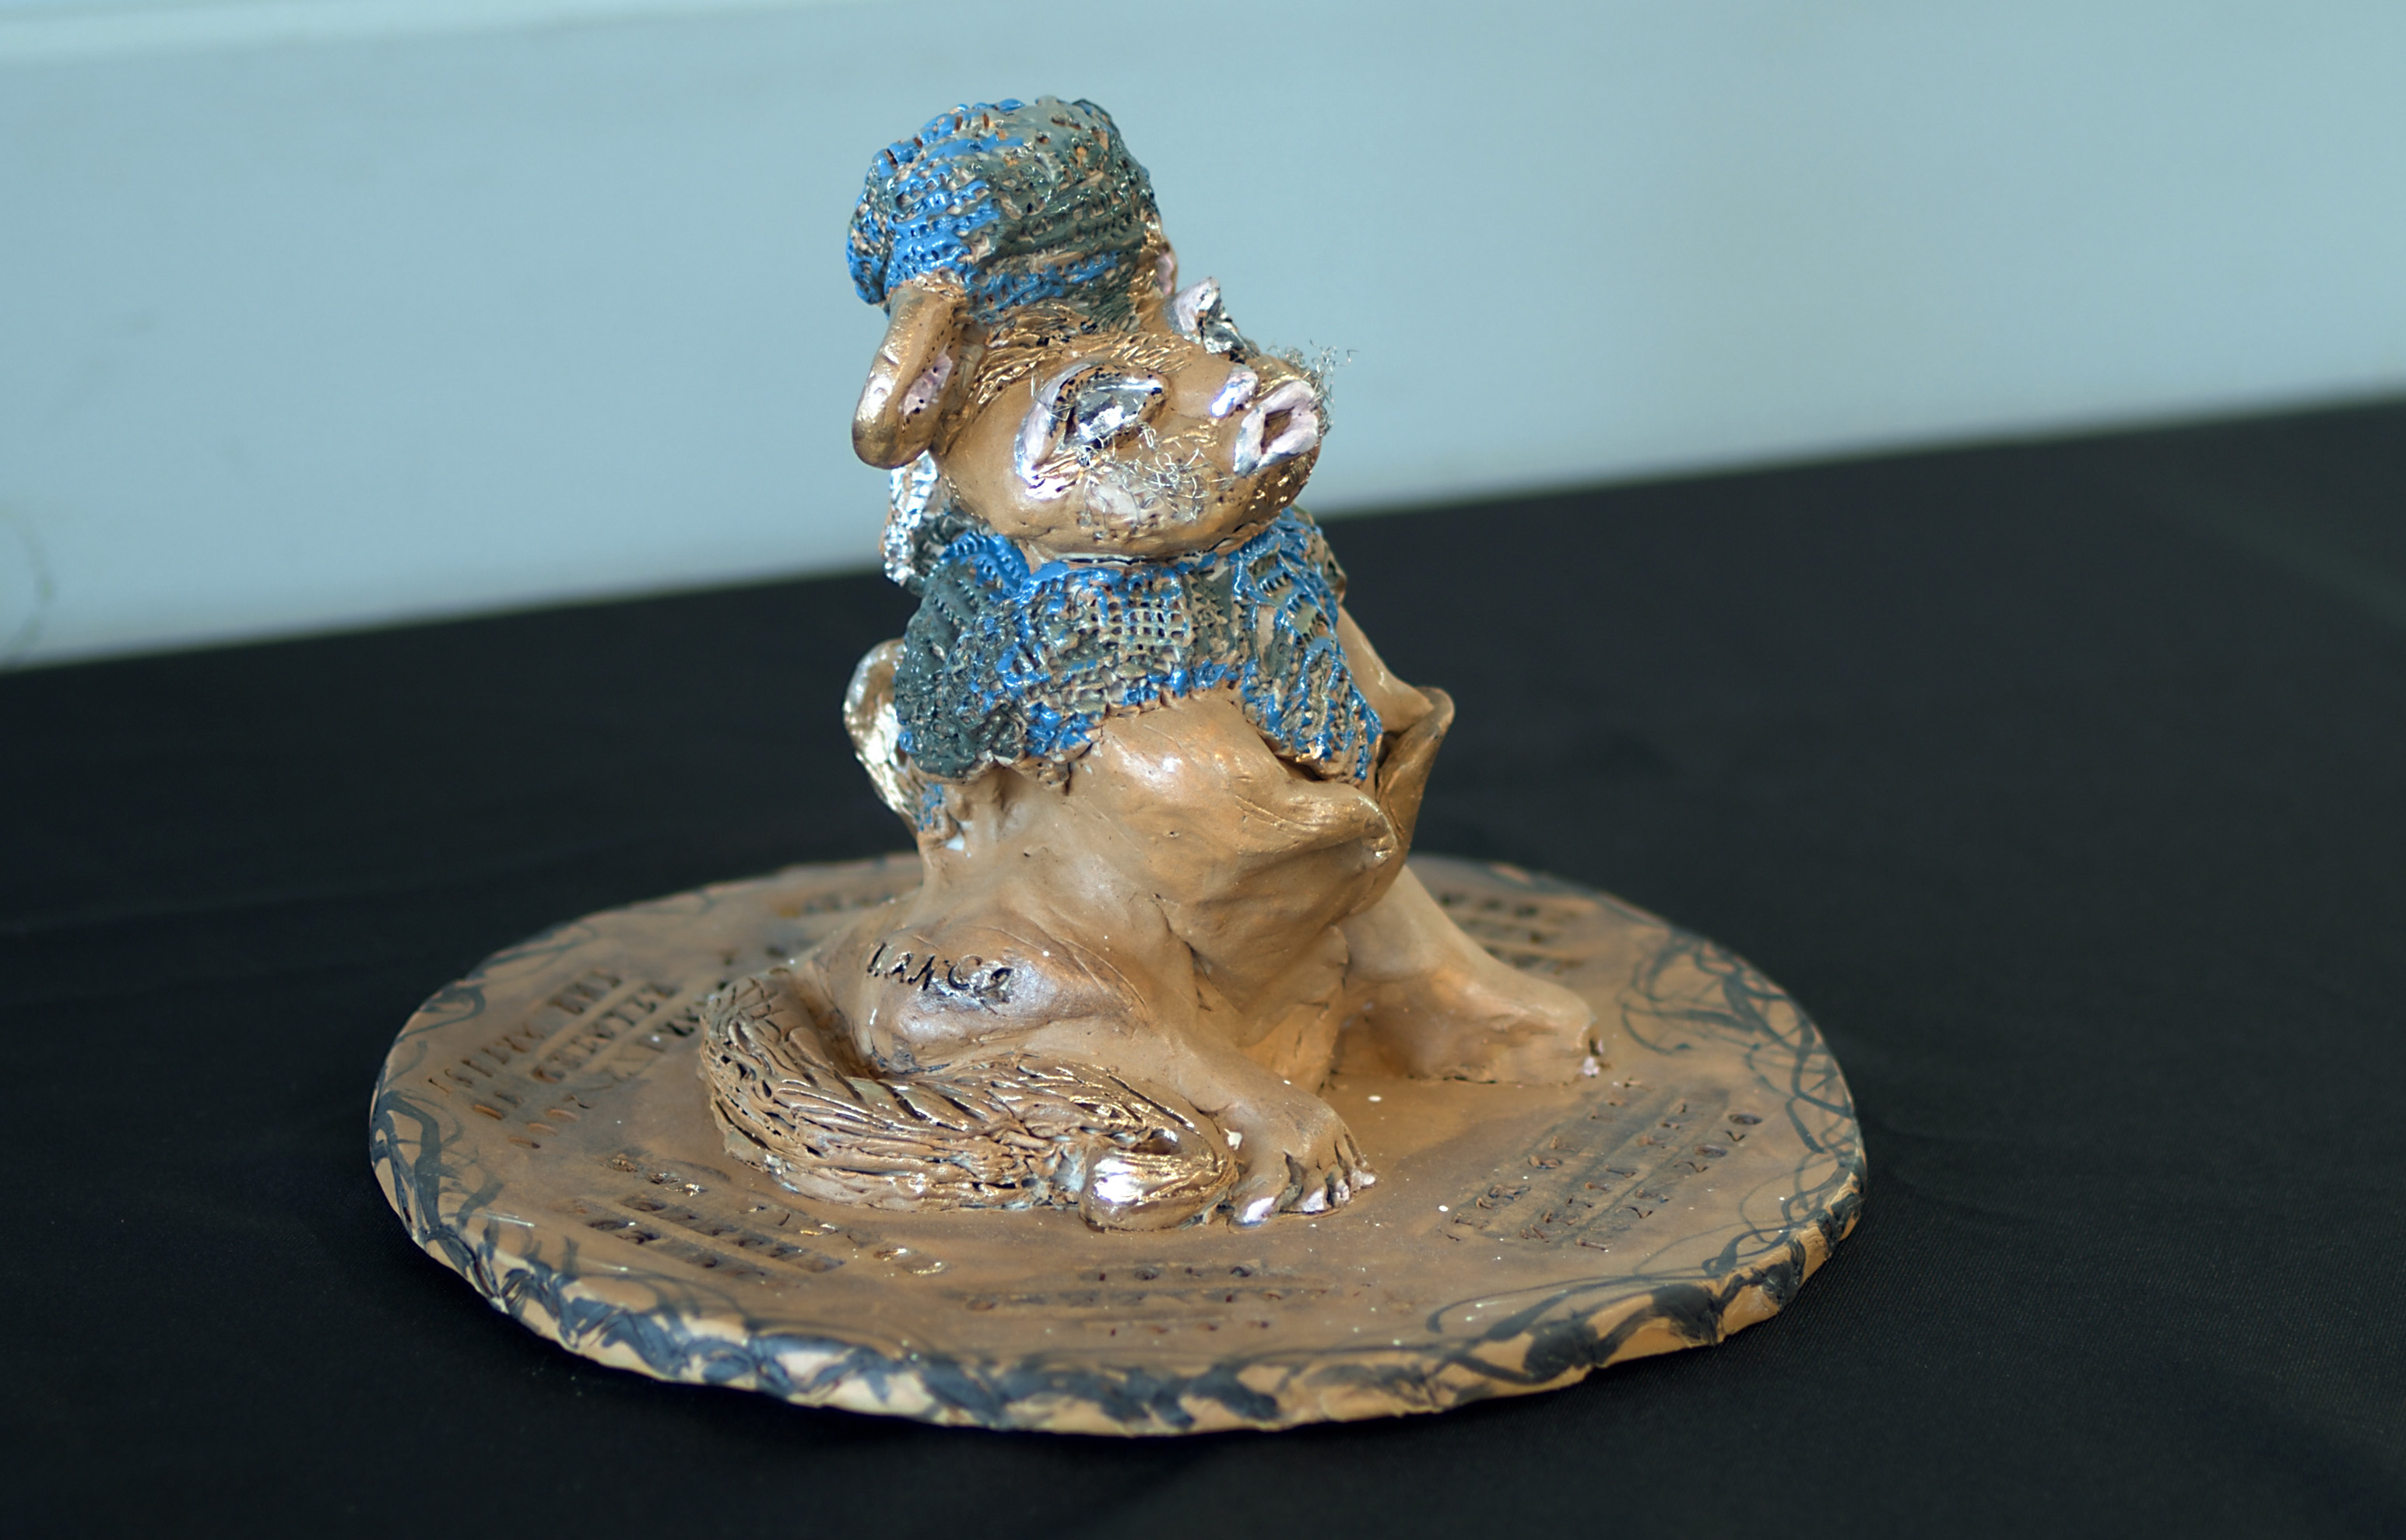 Ceramic 3d anthropomorphic rat sitting, blue headpiece and scarf, pink lips, metal whiskers. Rat sits on a circular plate with inscriptions of names and dates surrounding it.